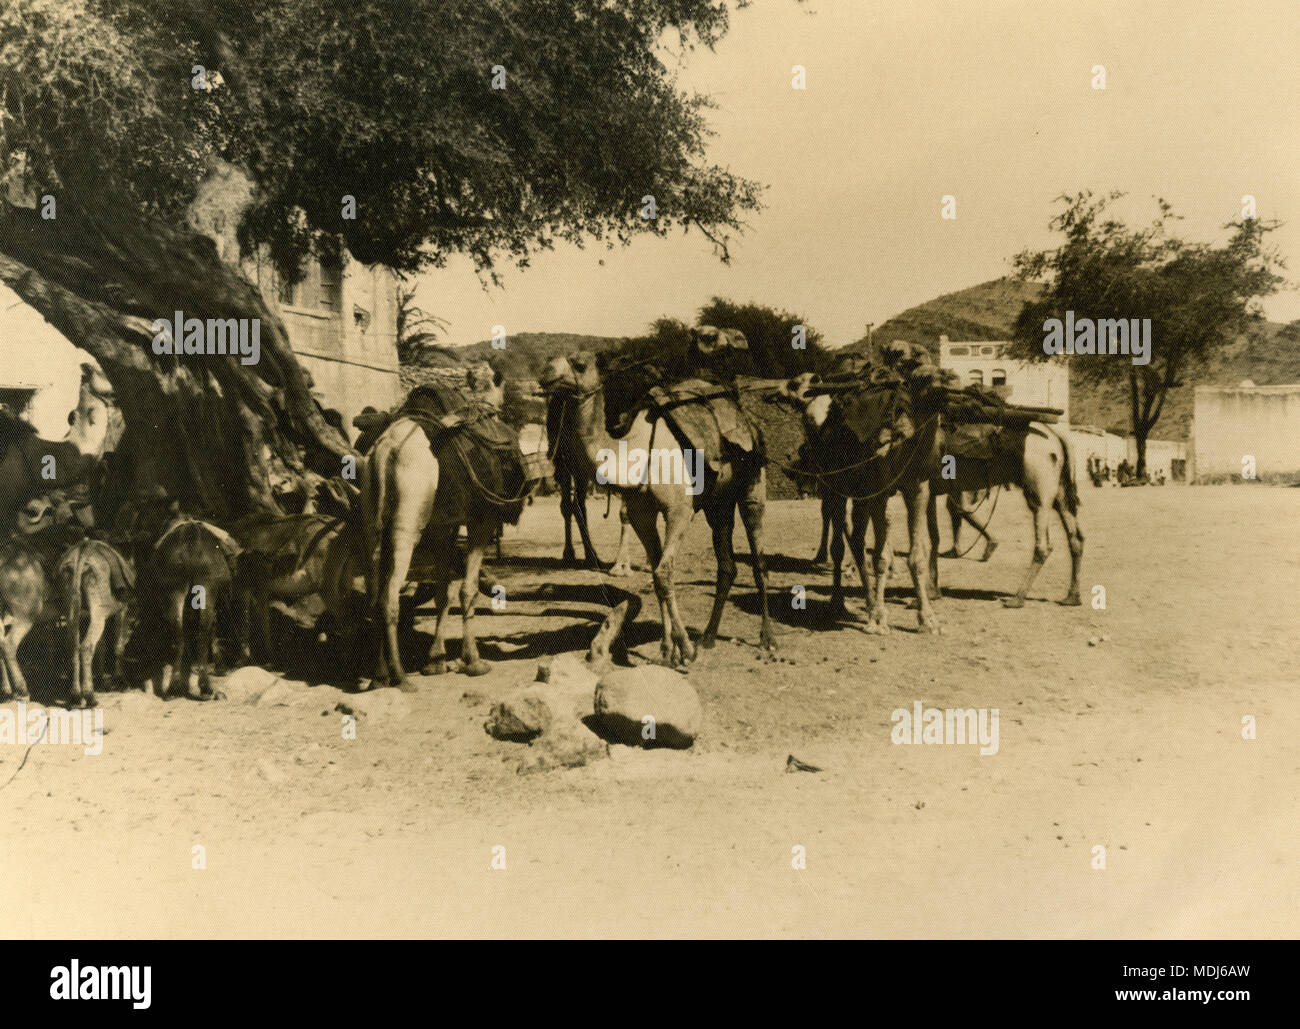 Camels and donkeys, North Africa 1930s - Stock Image